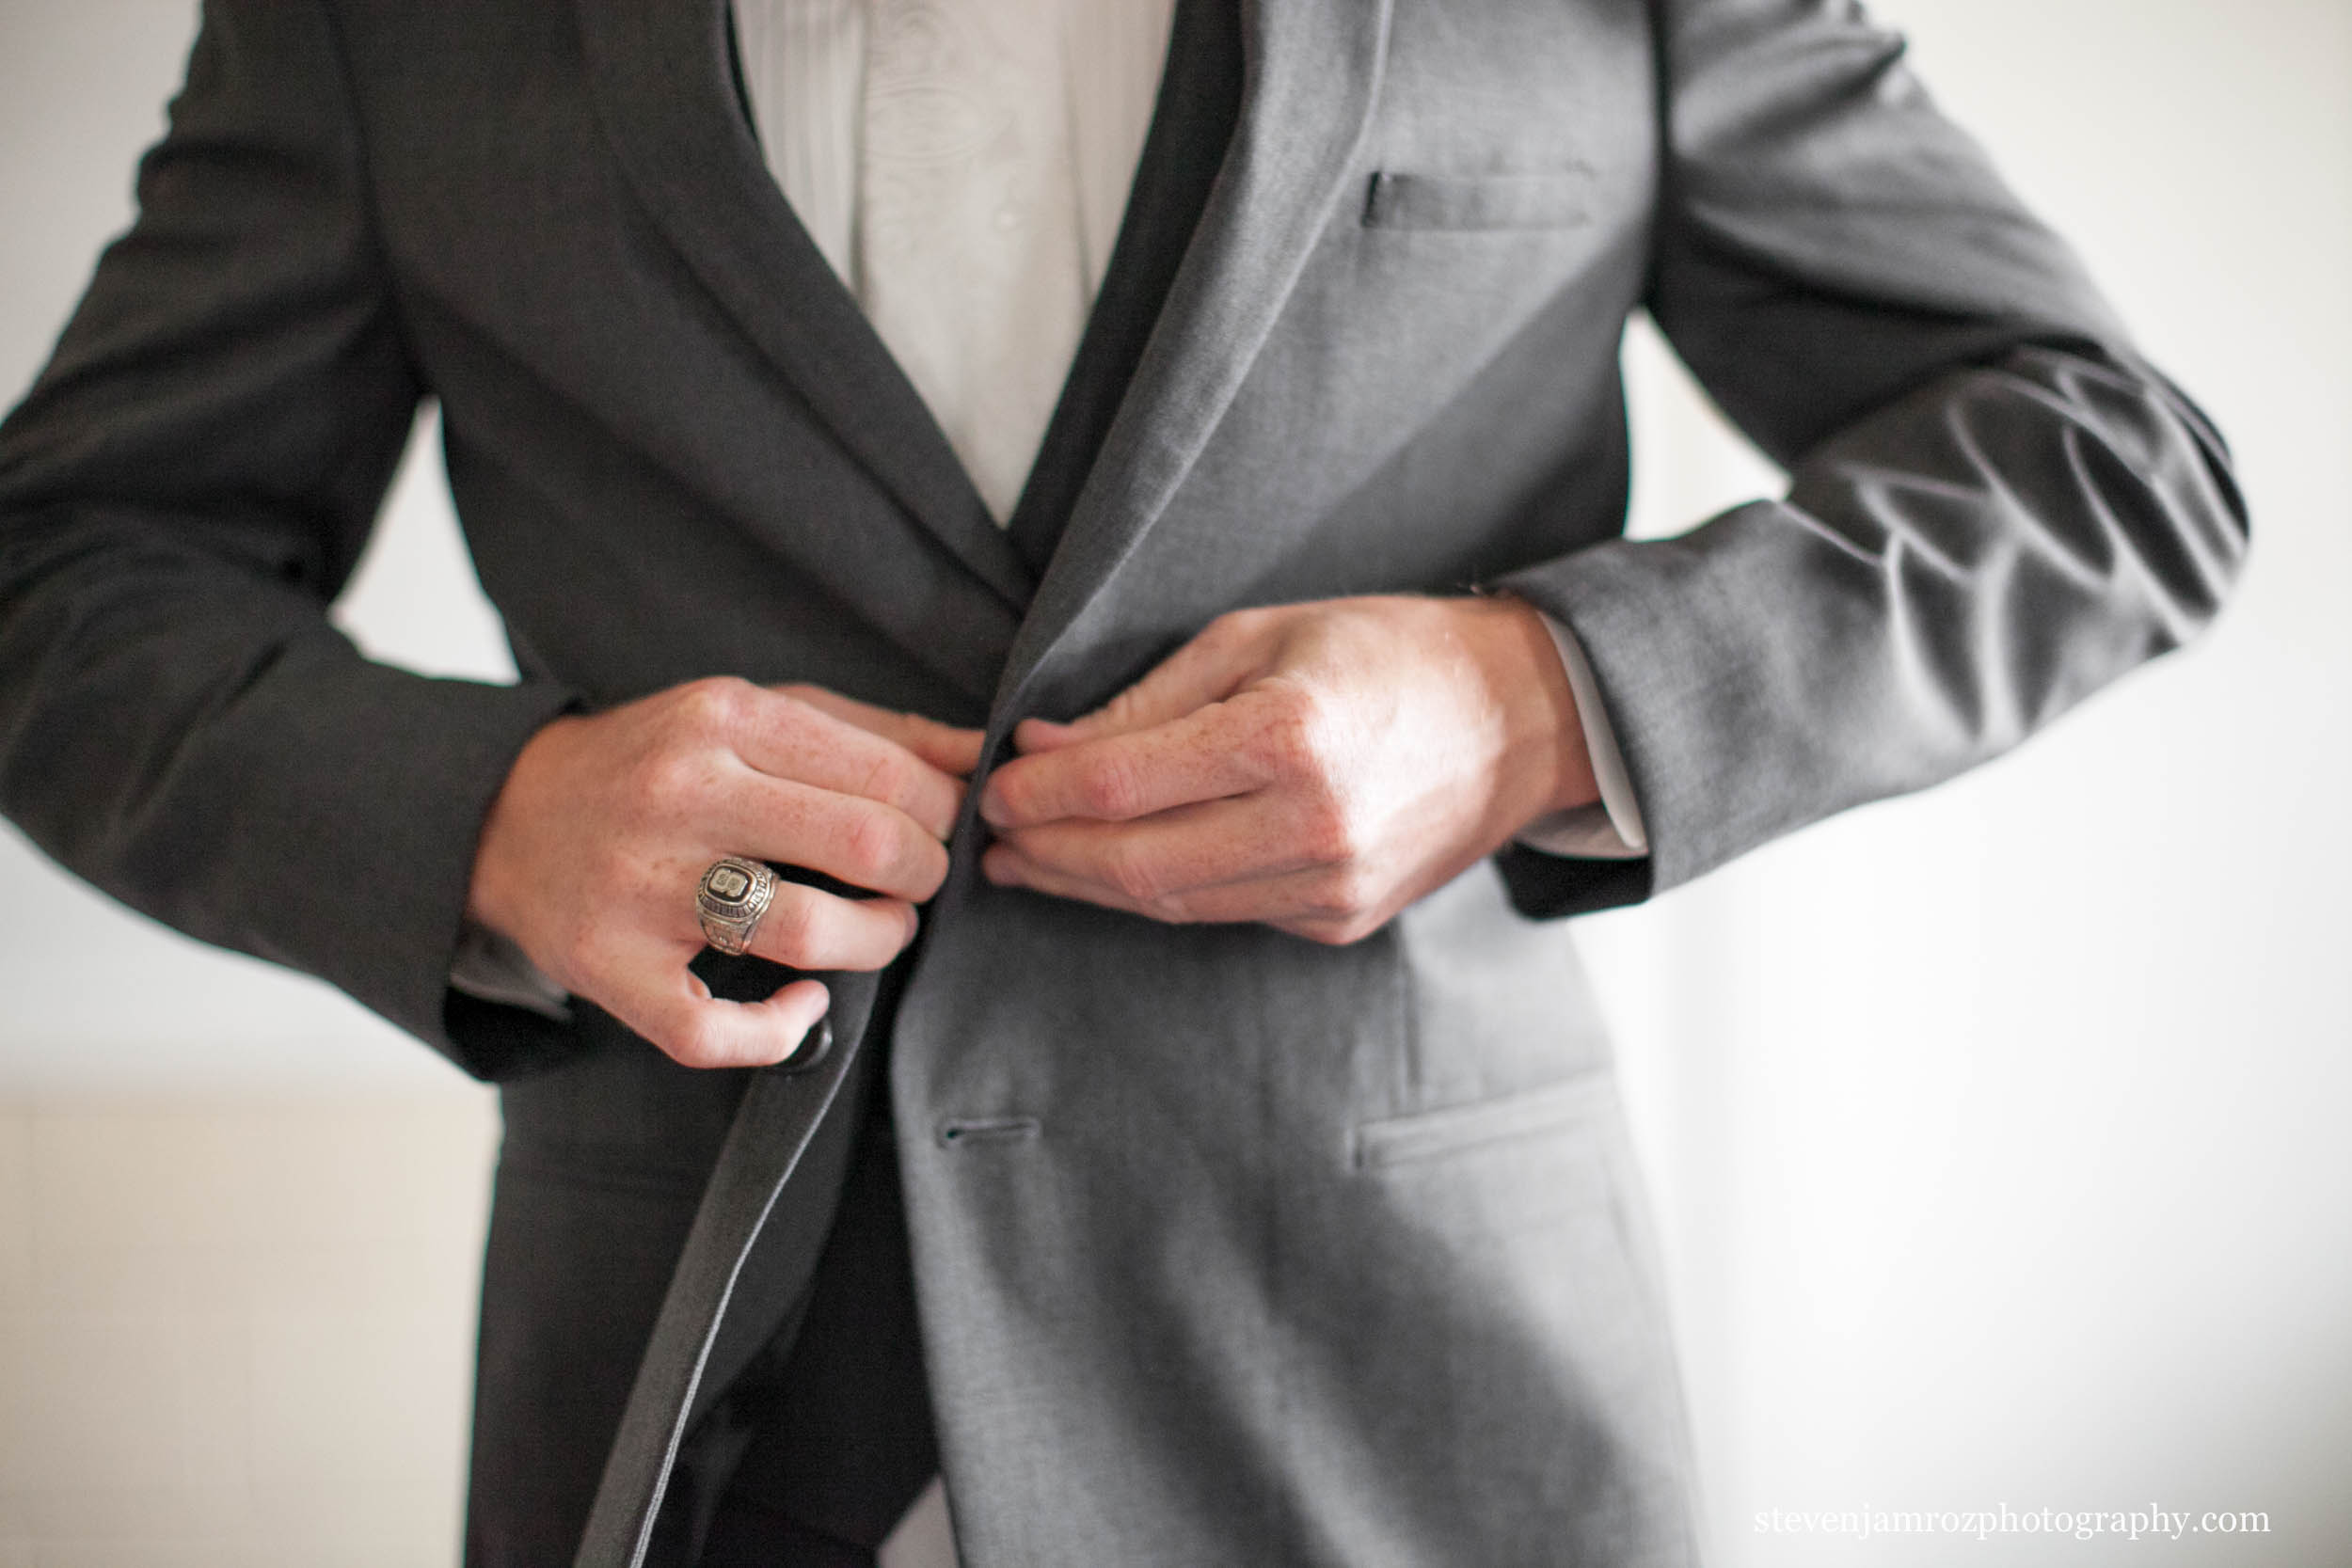 button-jacket-grey-wedding-guys-steven-jamroz-photography-0293.jpg